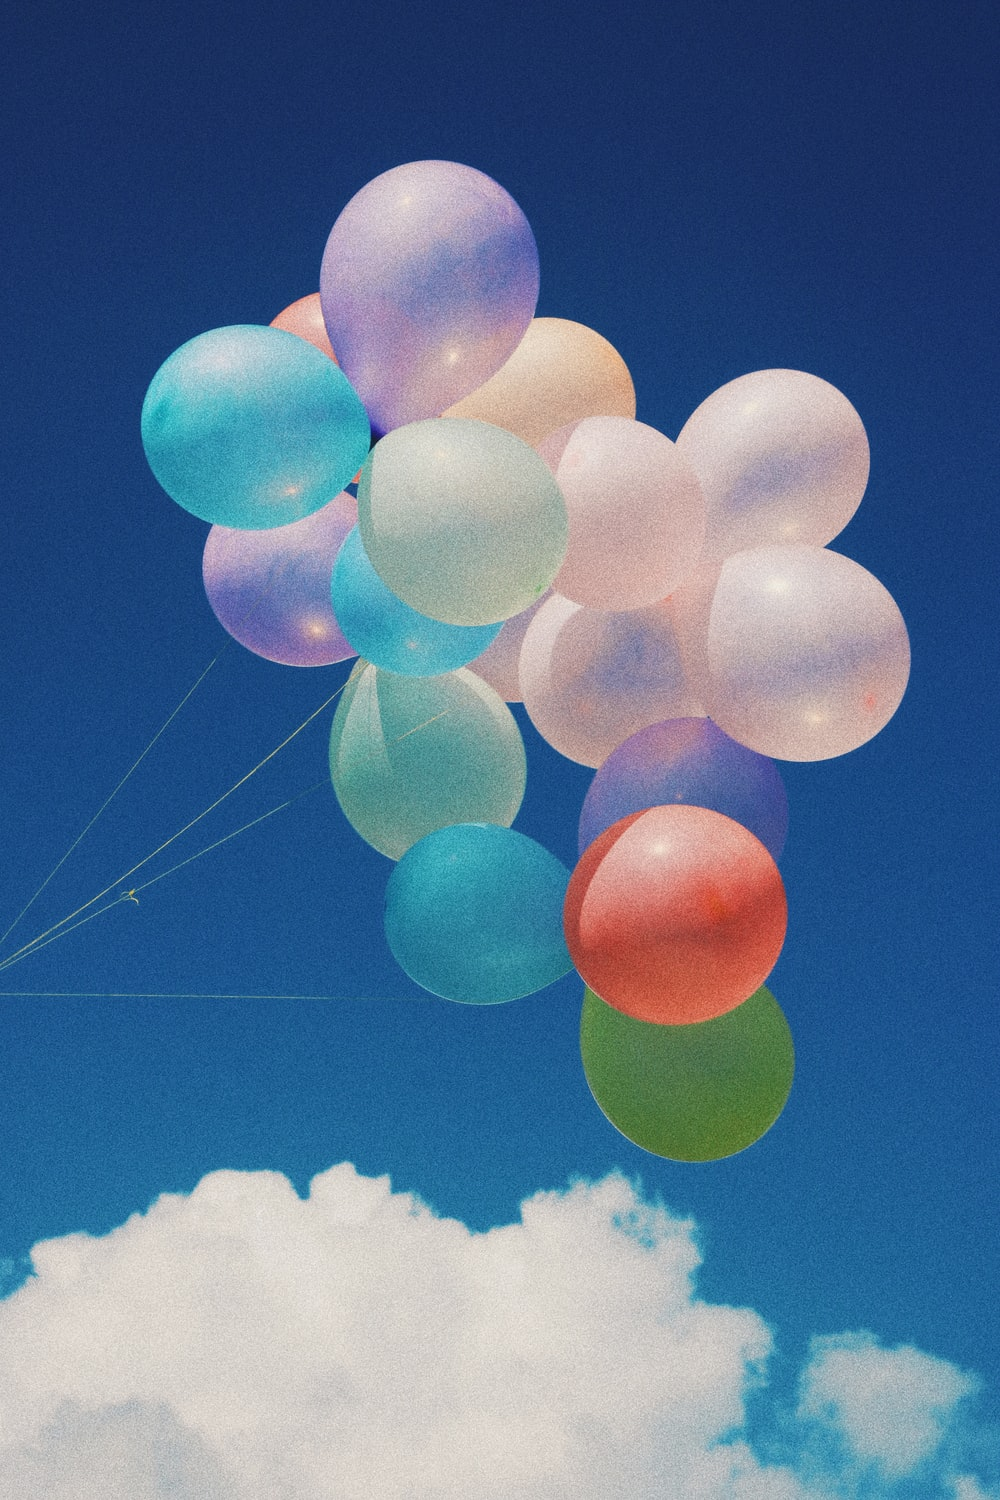 white, blue, and purple balloons